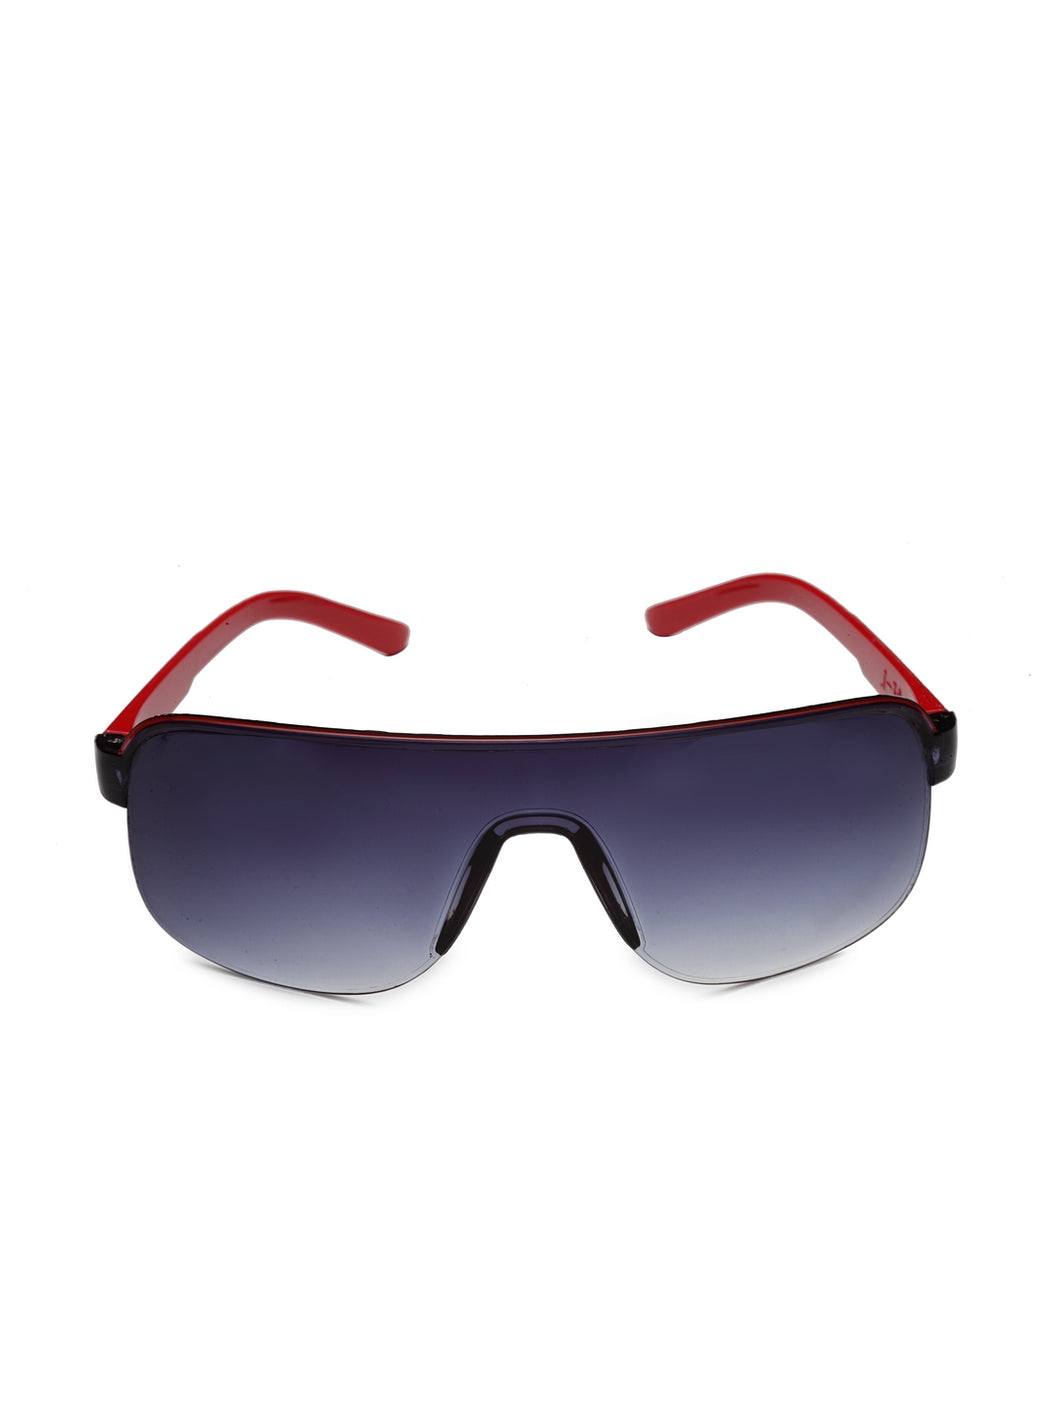 Stol'n Polarized UV-Protected Sports Boy's Sunglasses - Black